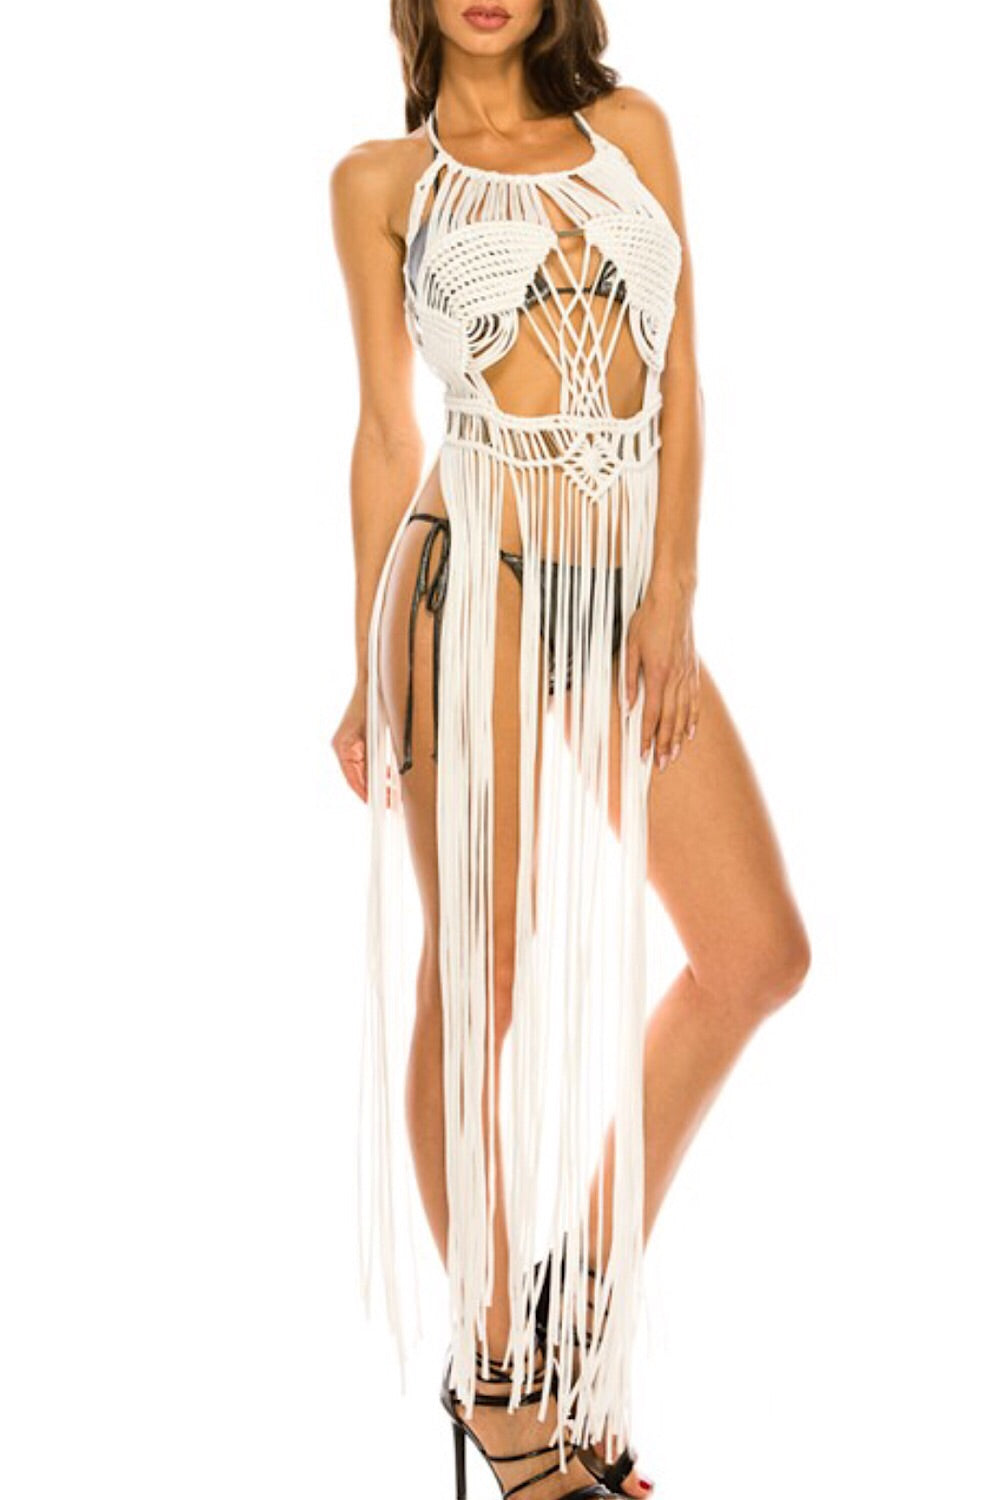 Desert Goddess Fringe Overlay Dress